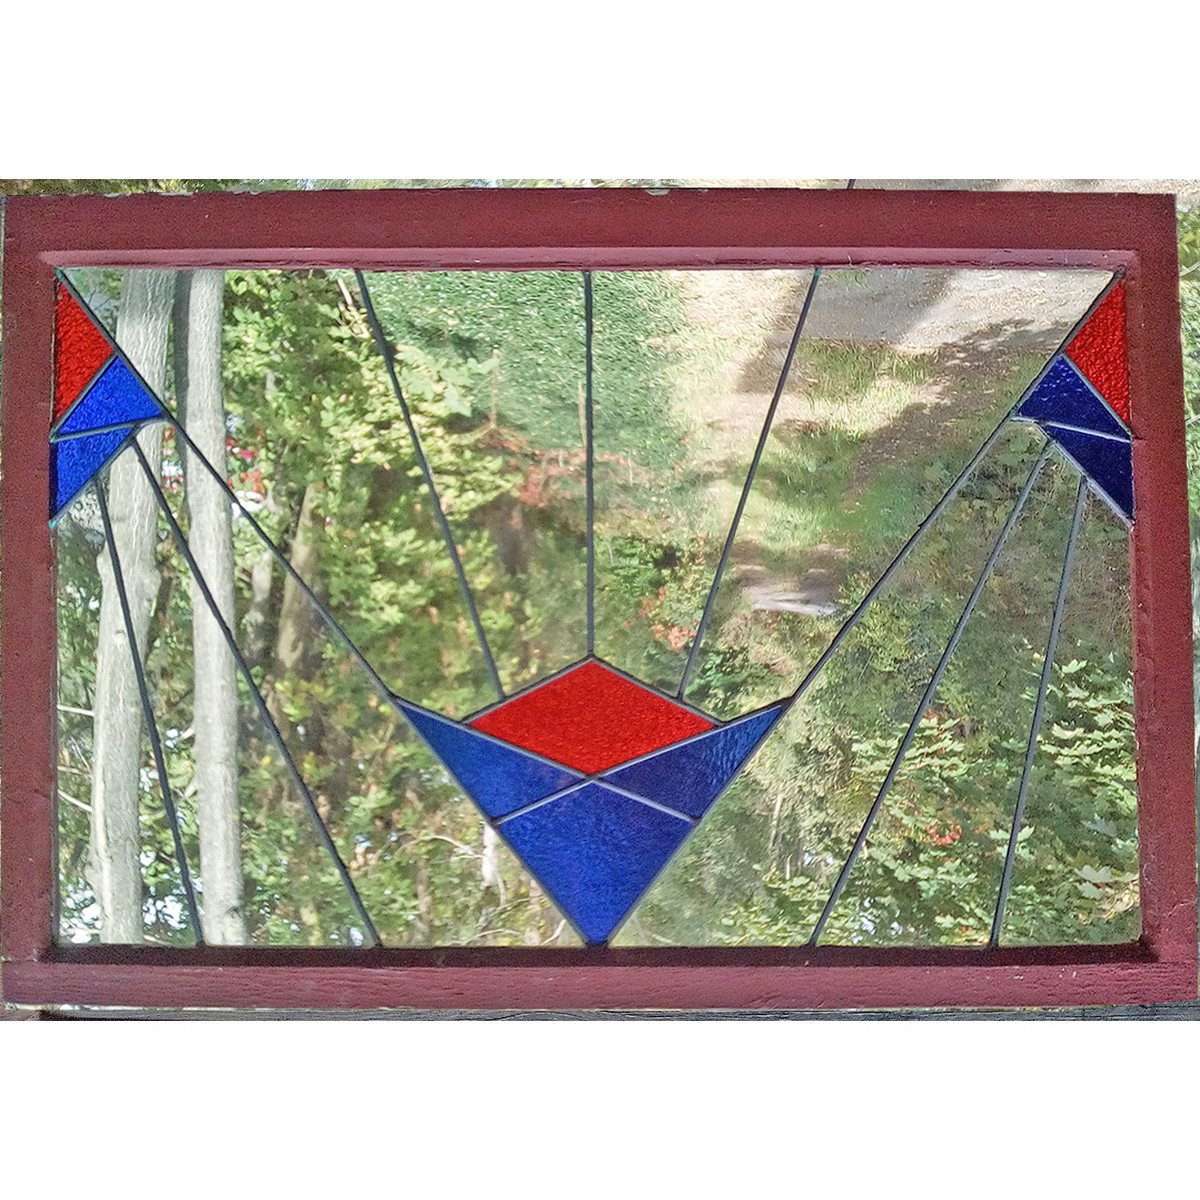 G19130 - Antique Arts and Crafts/Art Deco Stained Glass Window